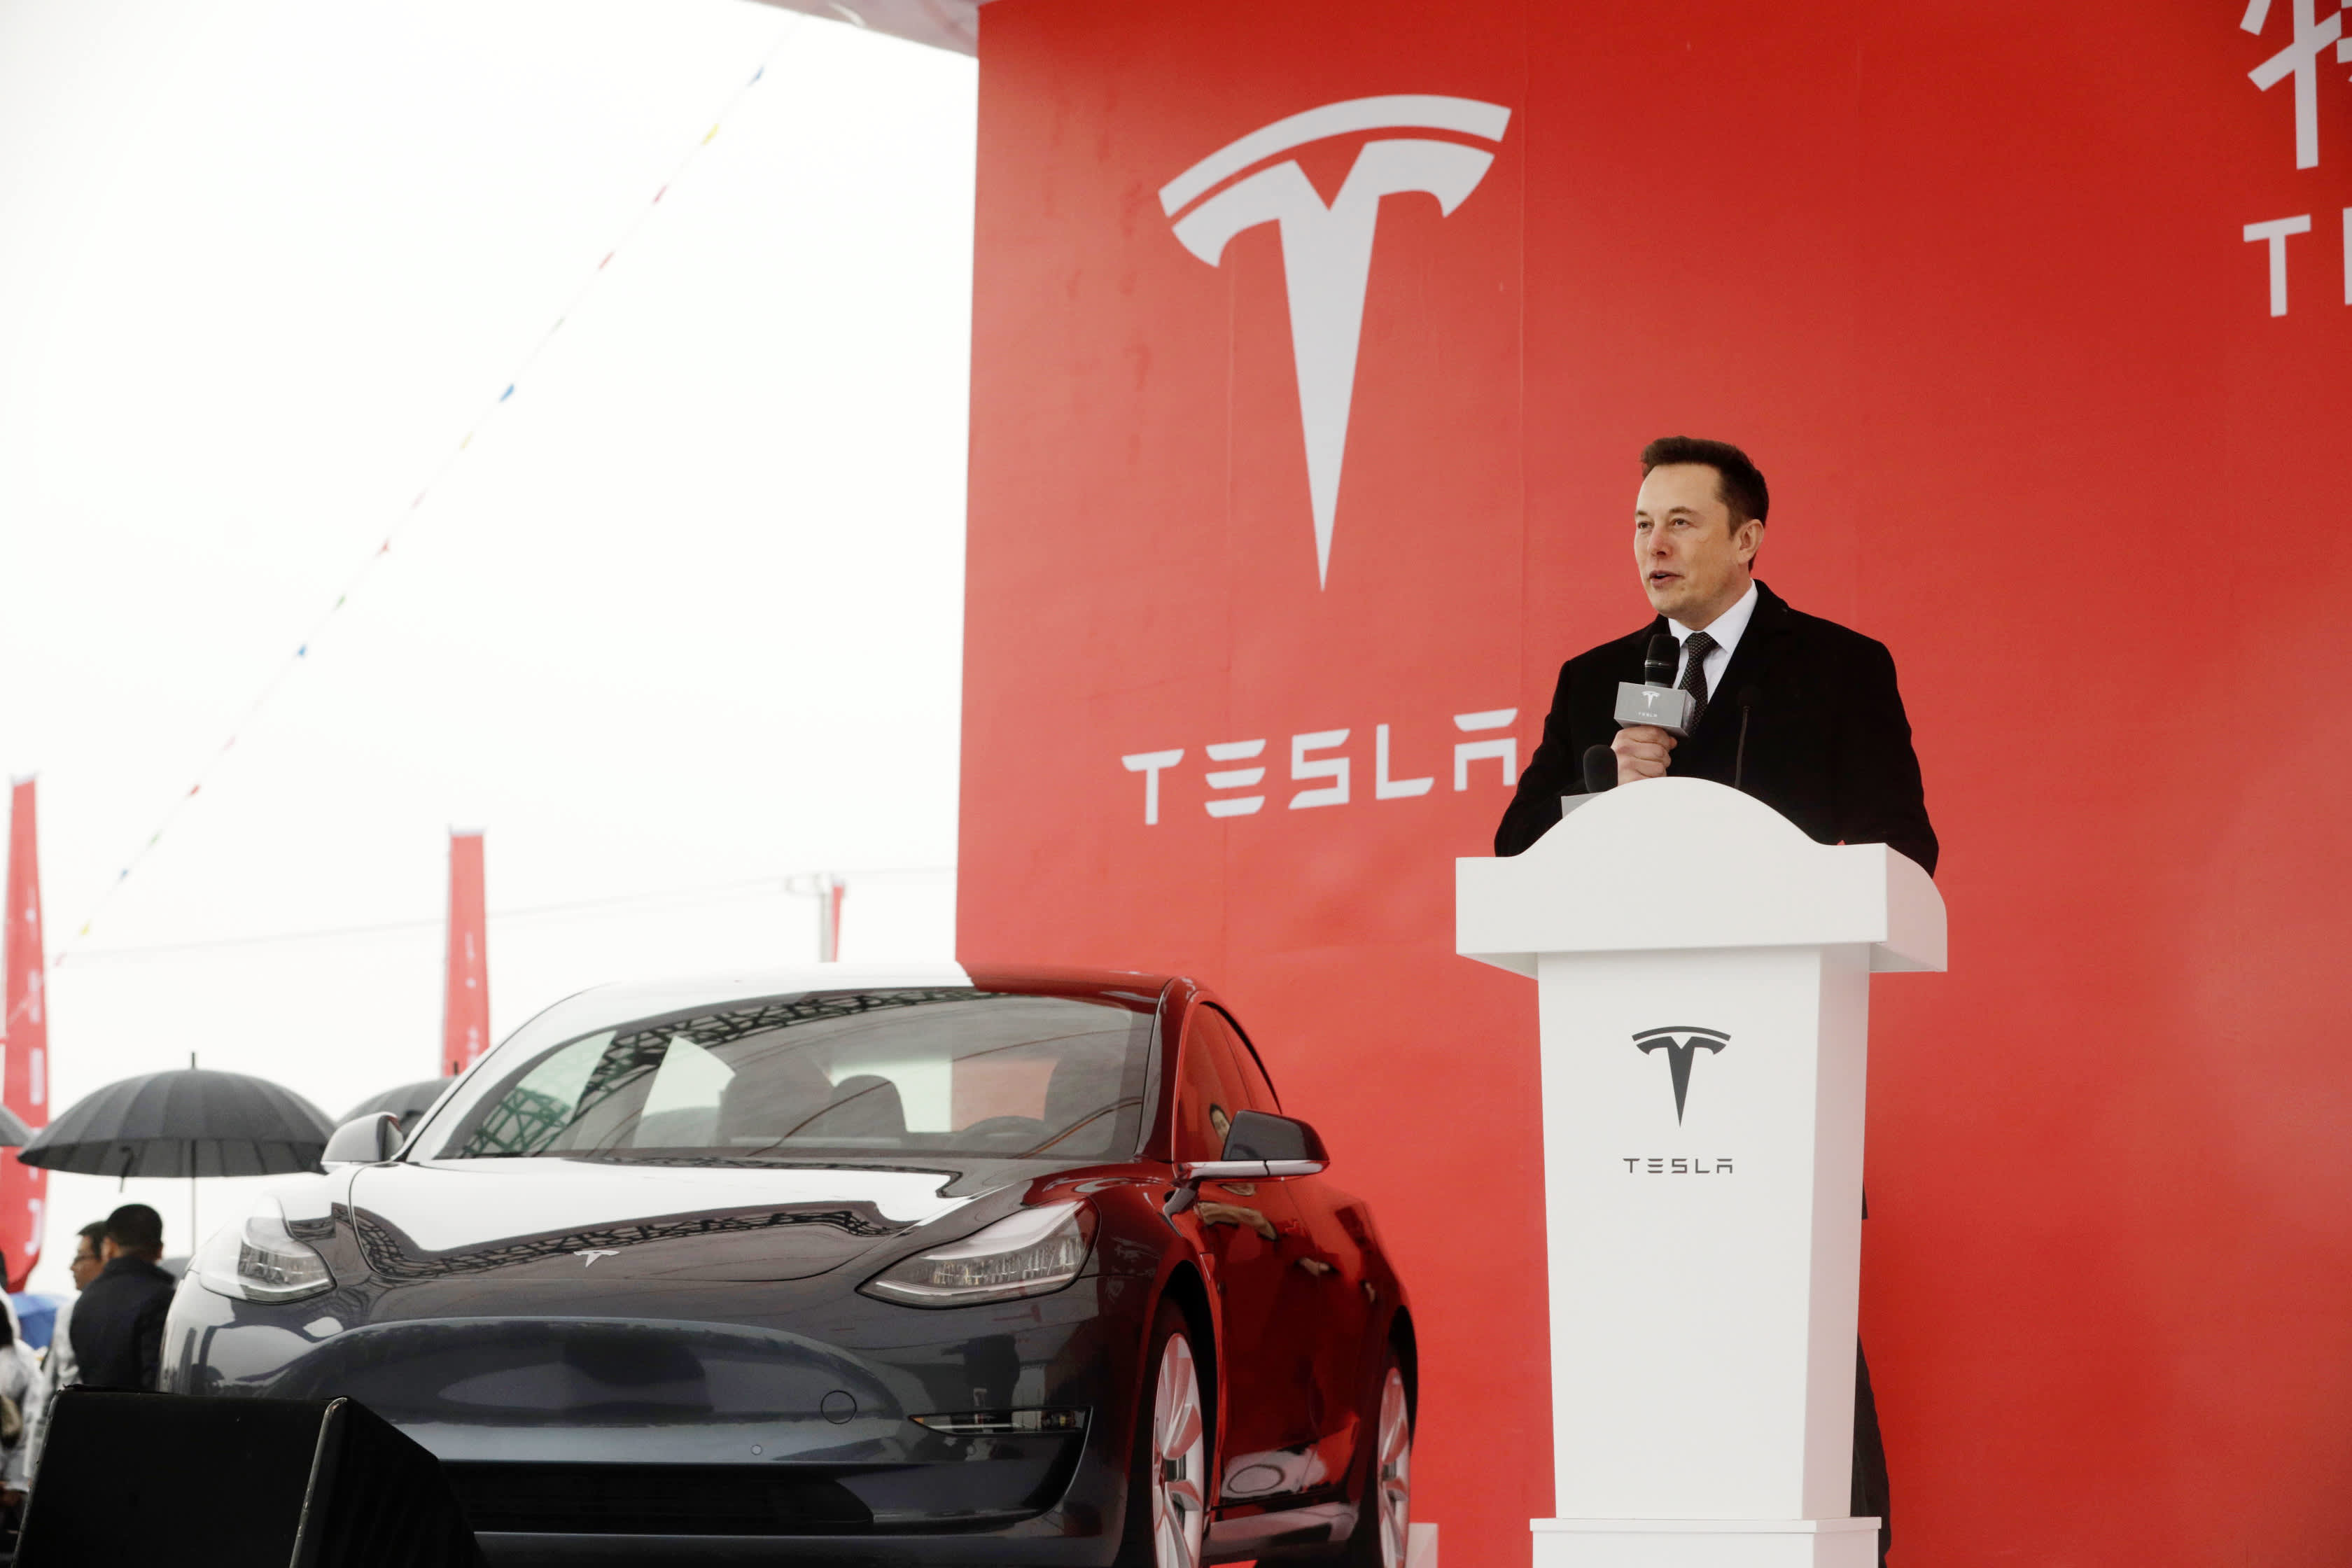 Elon Musk, chief executive officer of Tesla Inc., speaks during an event at the site of the company's manufacturing facility in Shanghai, China, on Monday, Jan. 7, 2019.